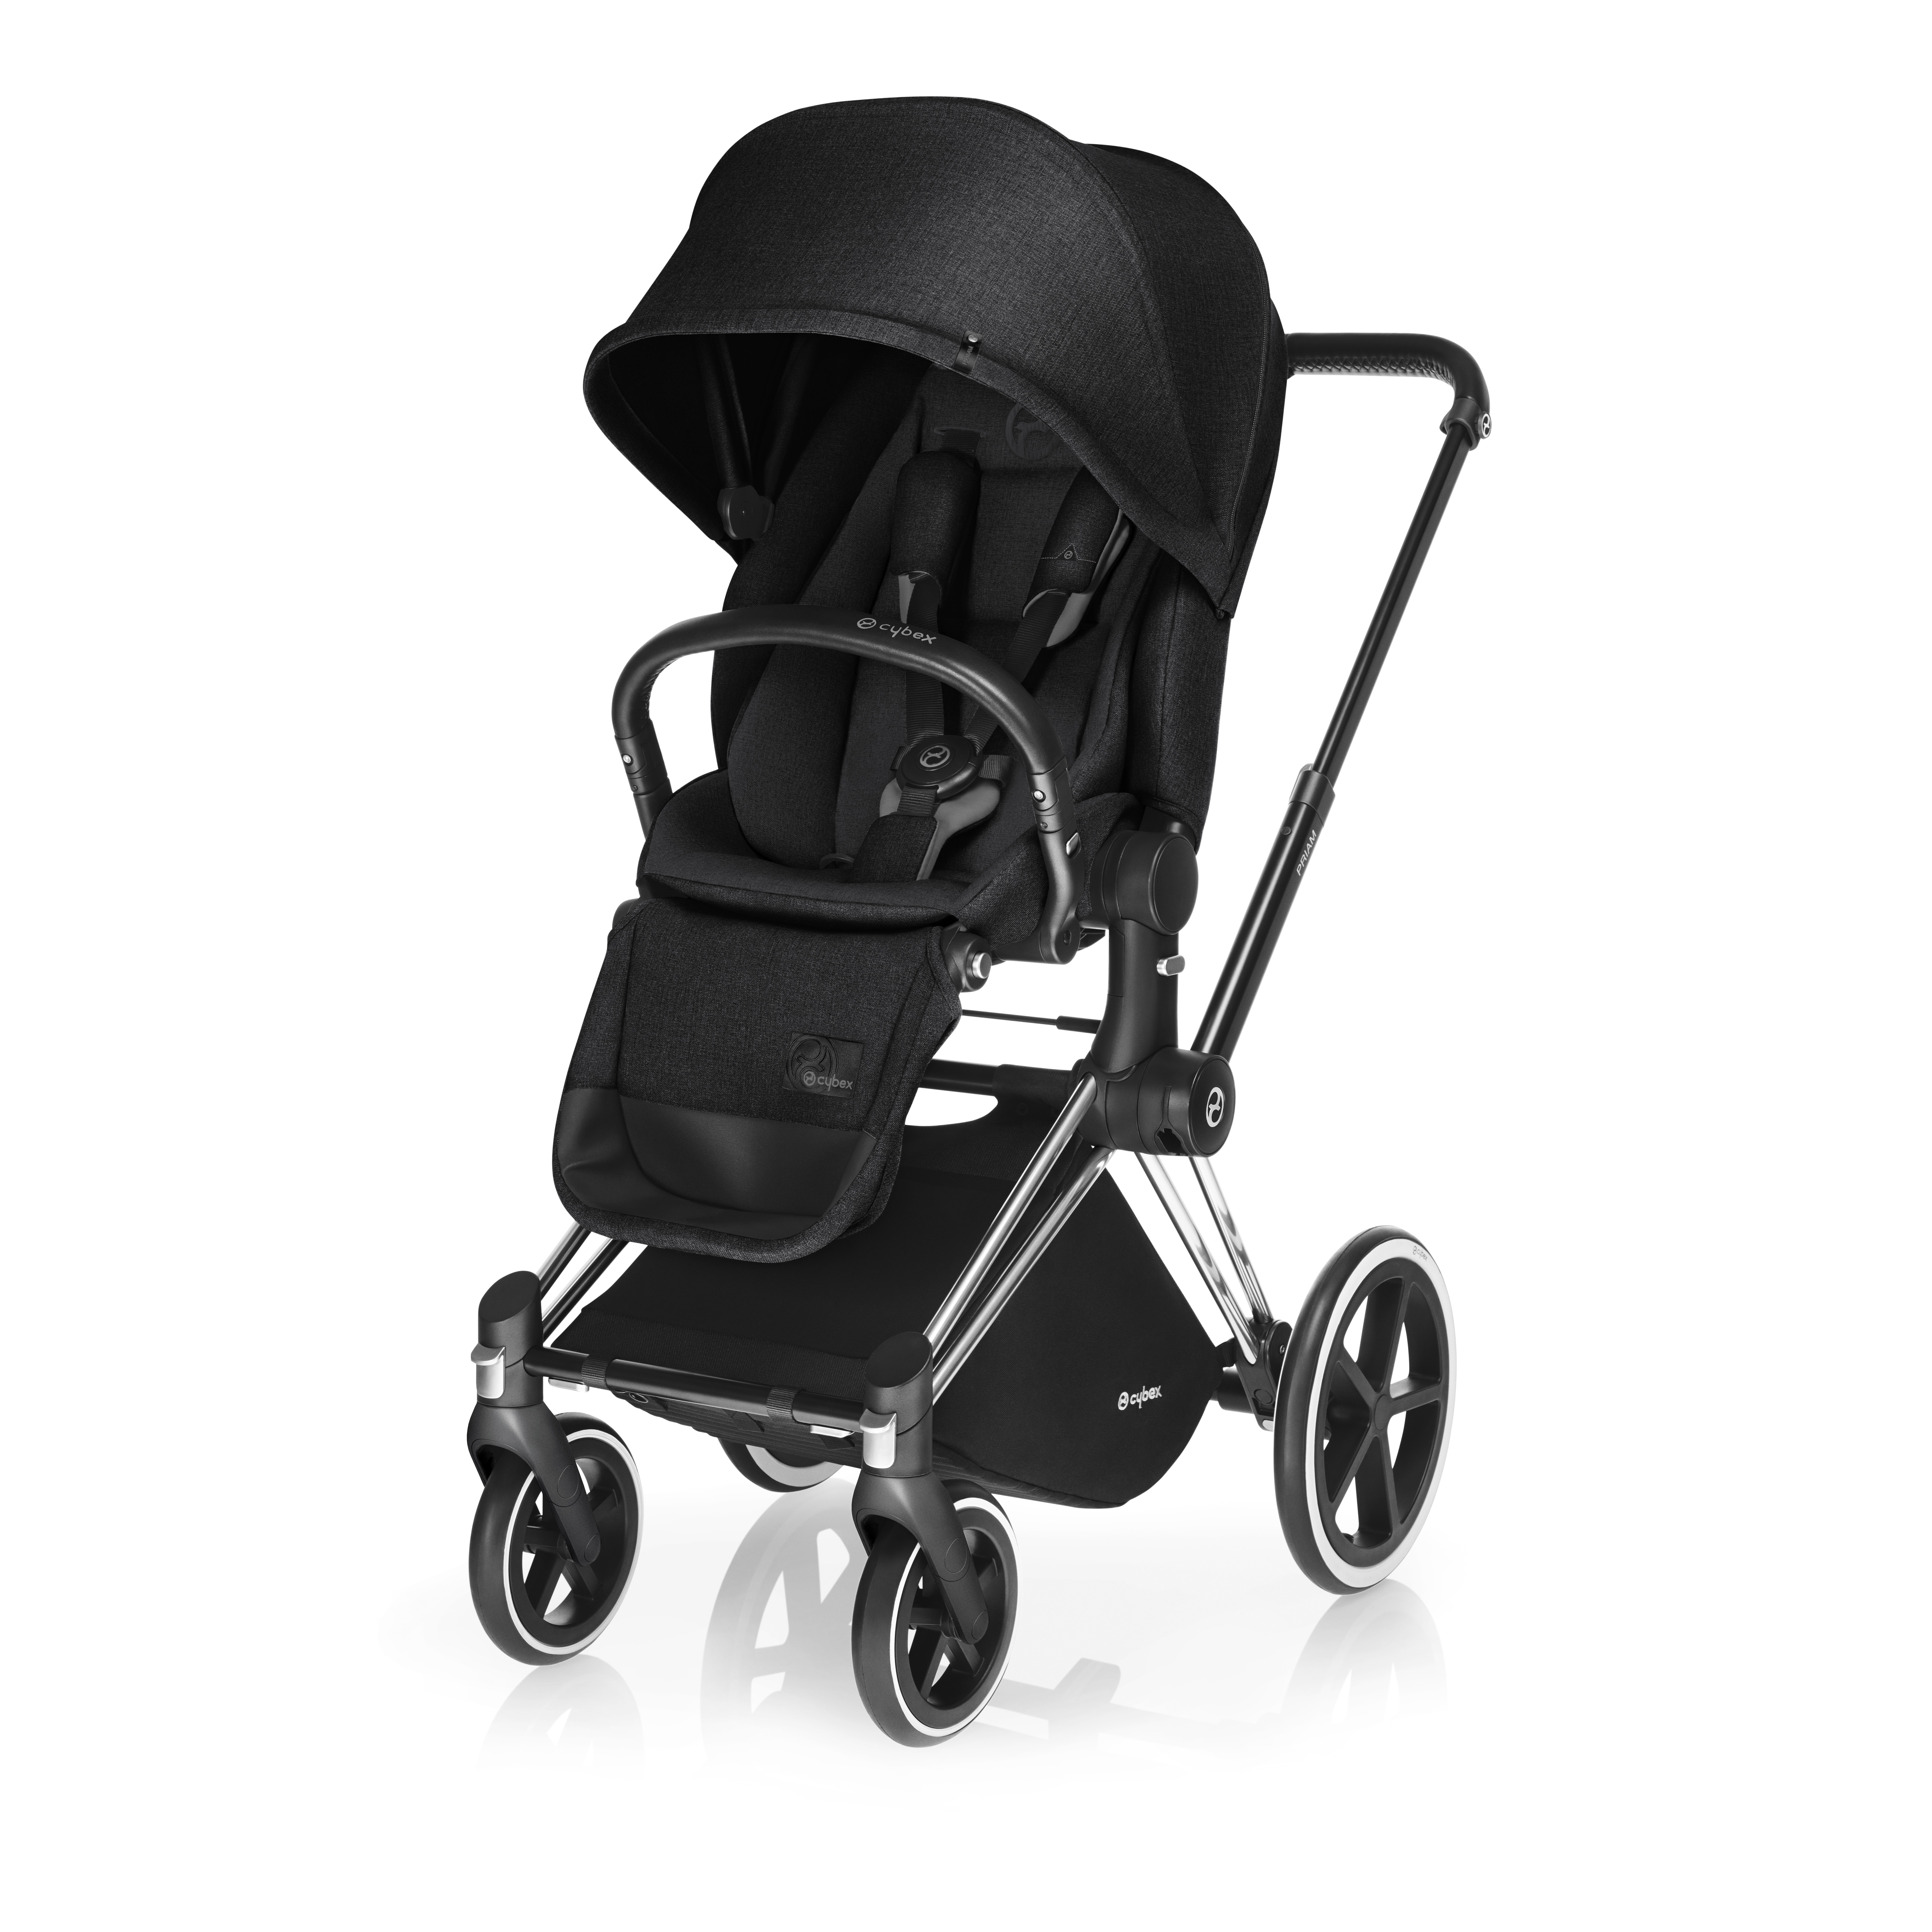 Прогулочный блок Cybex для коляски Priam LUX Stardust Black, цвет: черный